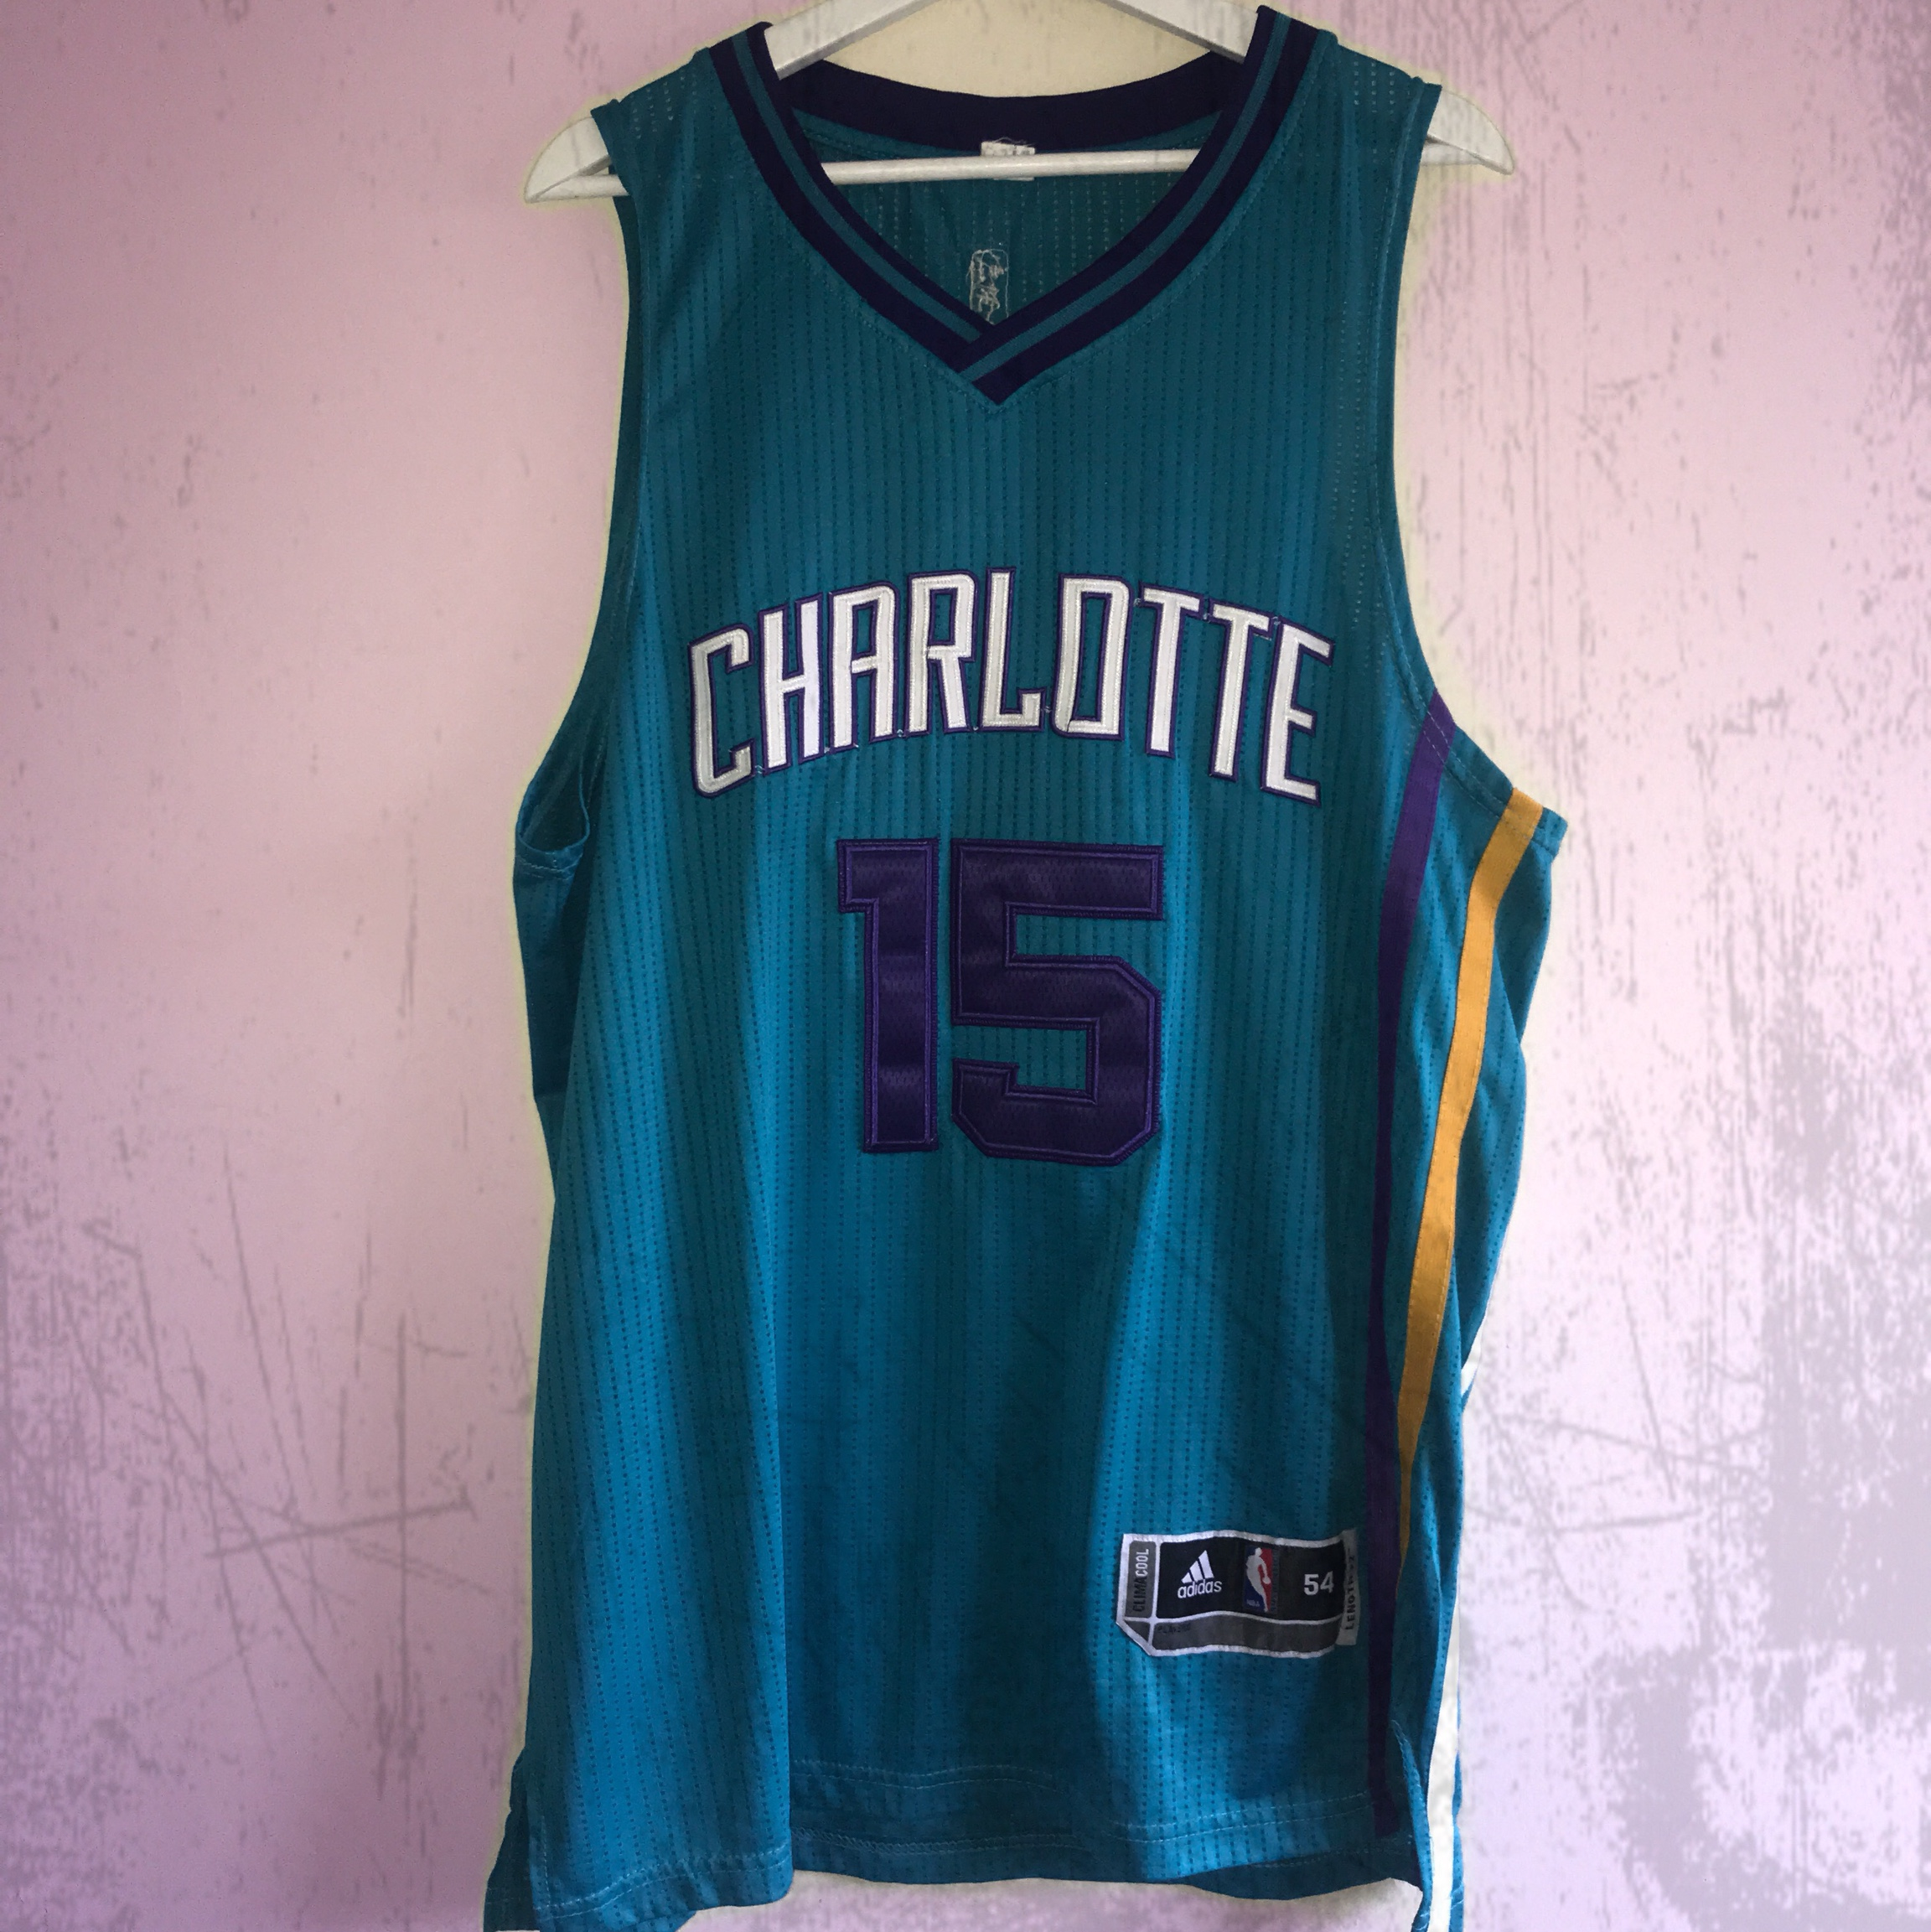 new product 35773 af23f NBA Charlotte Hornets Jersey New Orleans Adidas... - Depop